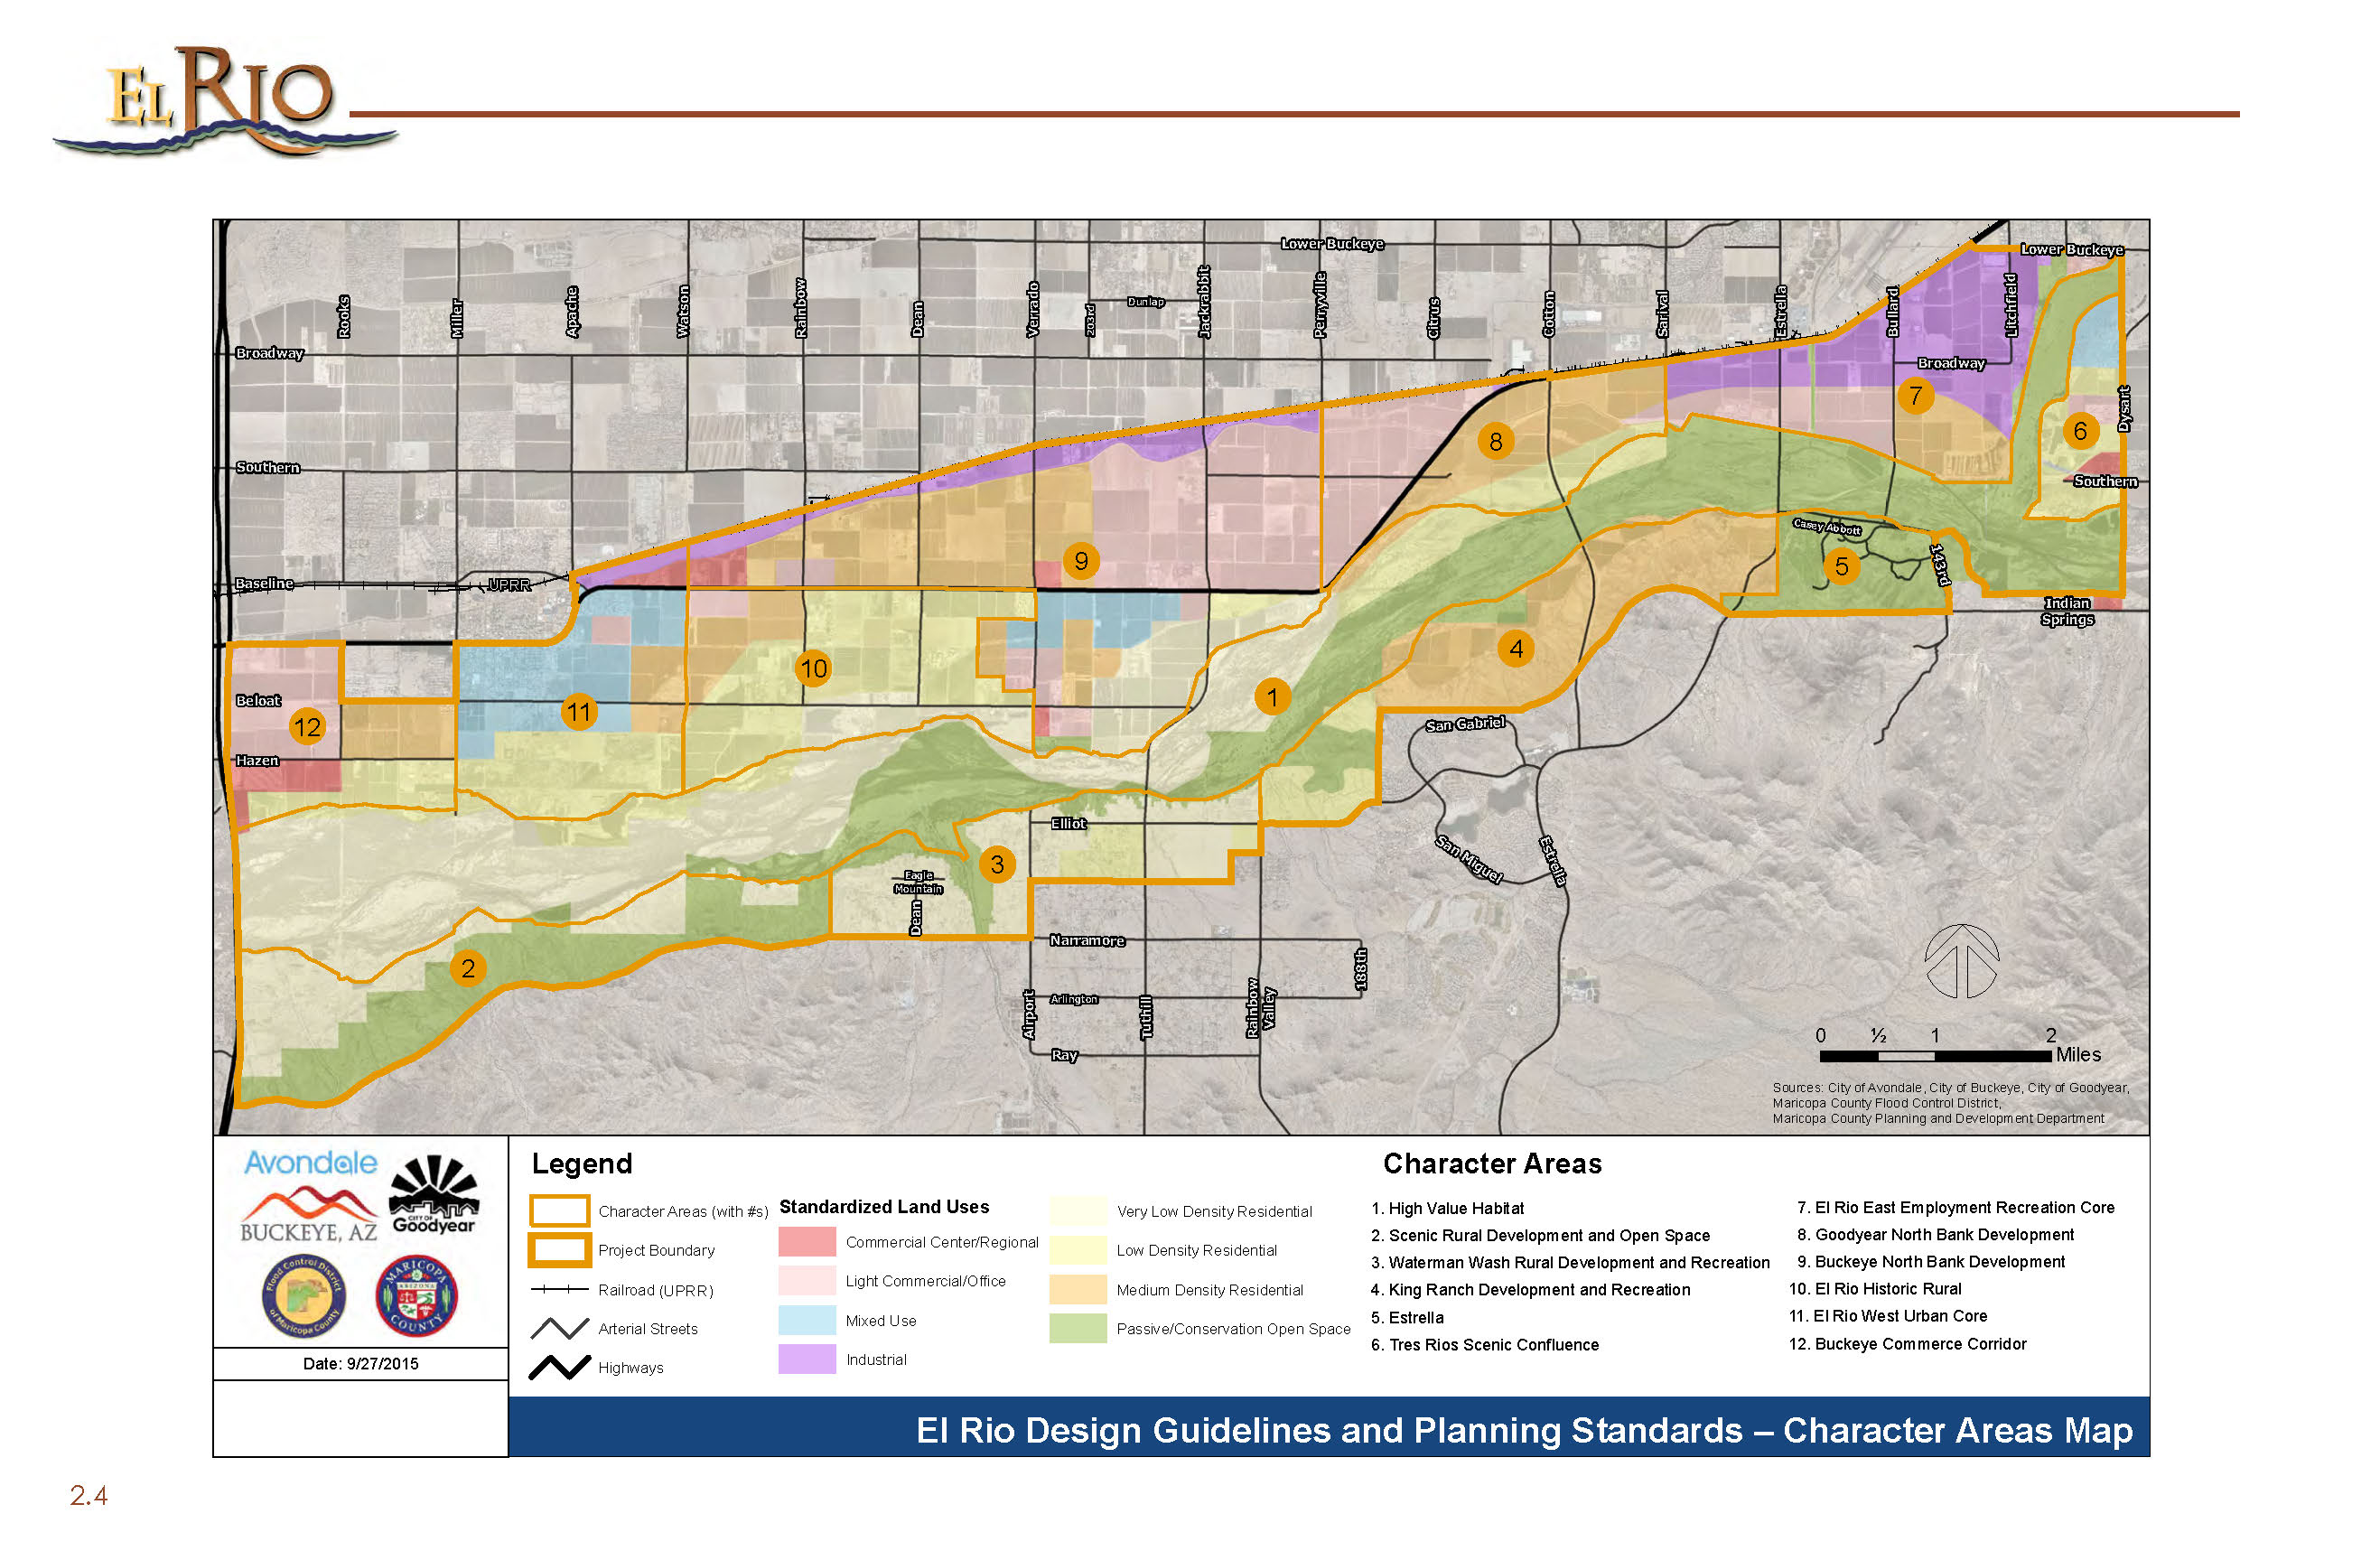 Final-El-Rio-Design-Guidelines-and-Planning-Standards-Report-2015_12_22a_Page_021